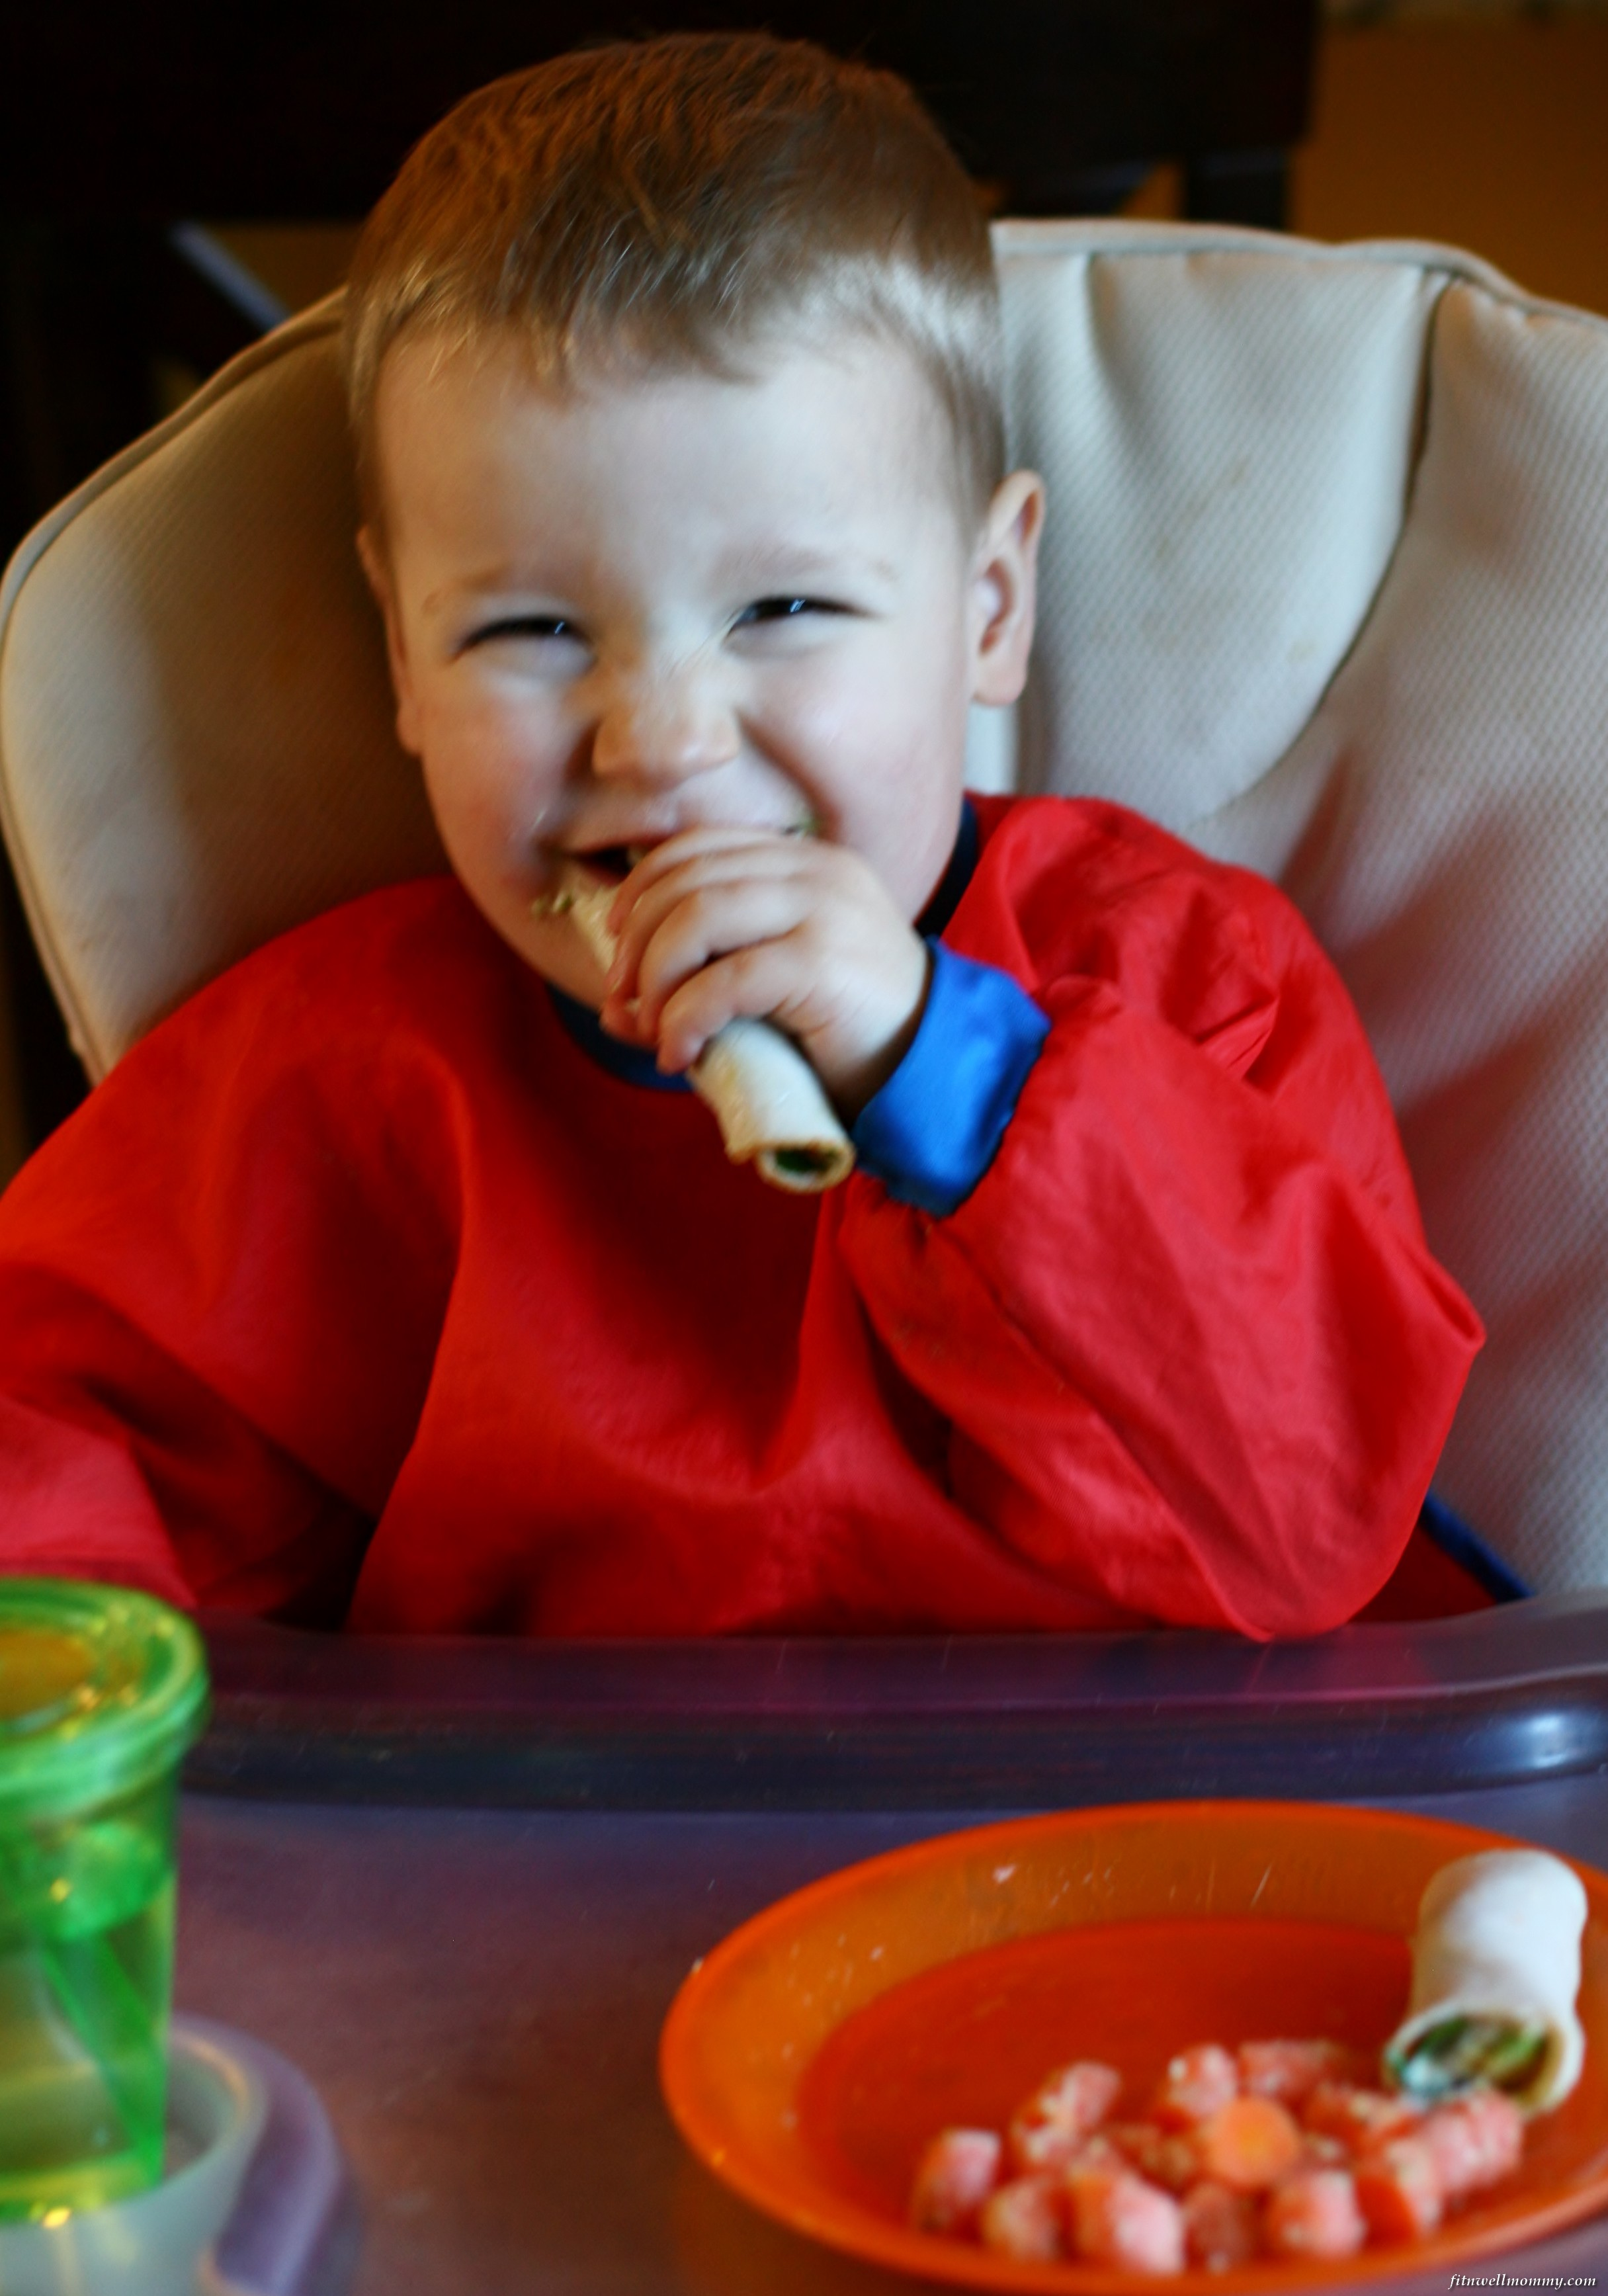 Enjoying his Paleo lunch of turkey rolls today!